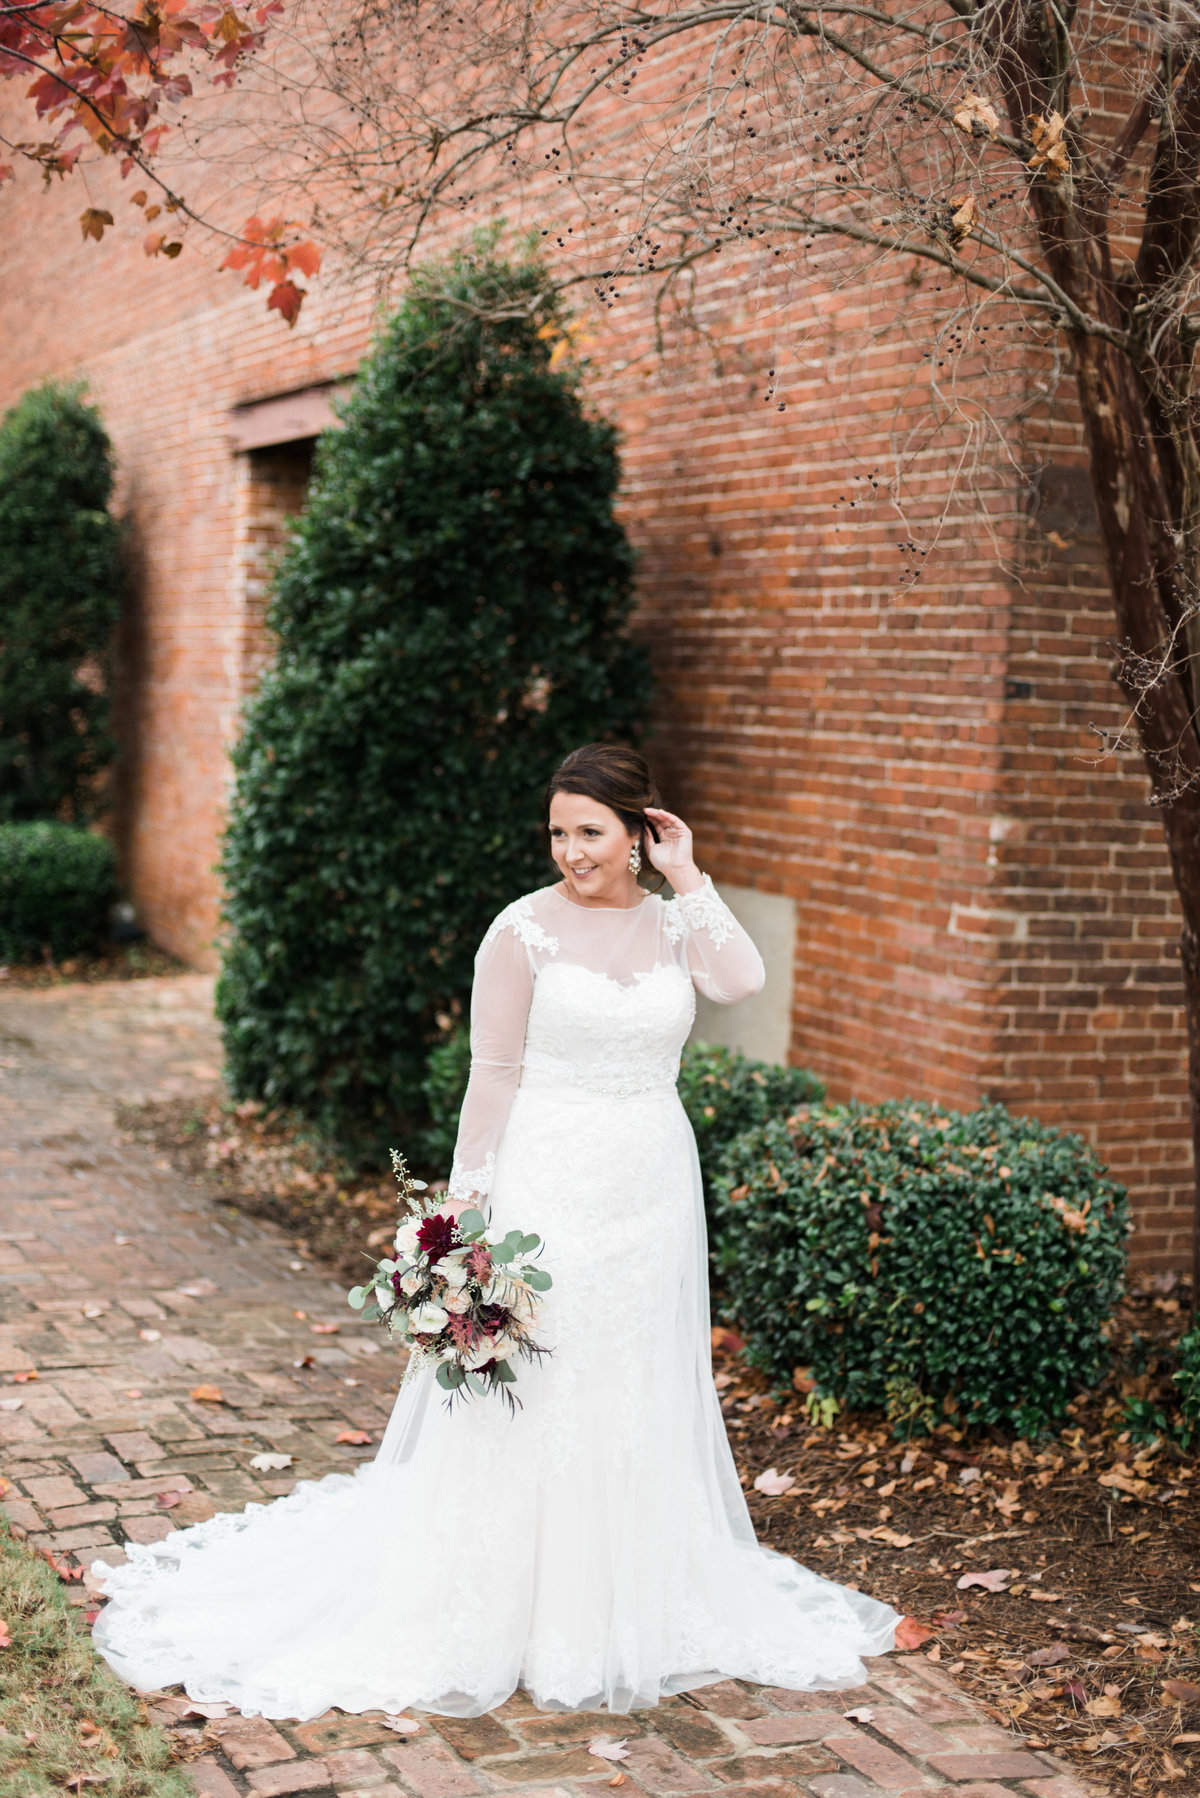 laurenbrandonwedding-236